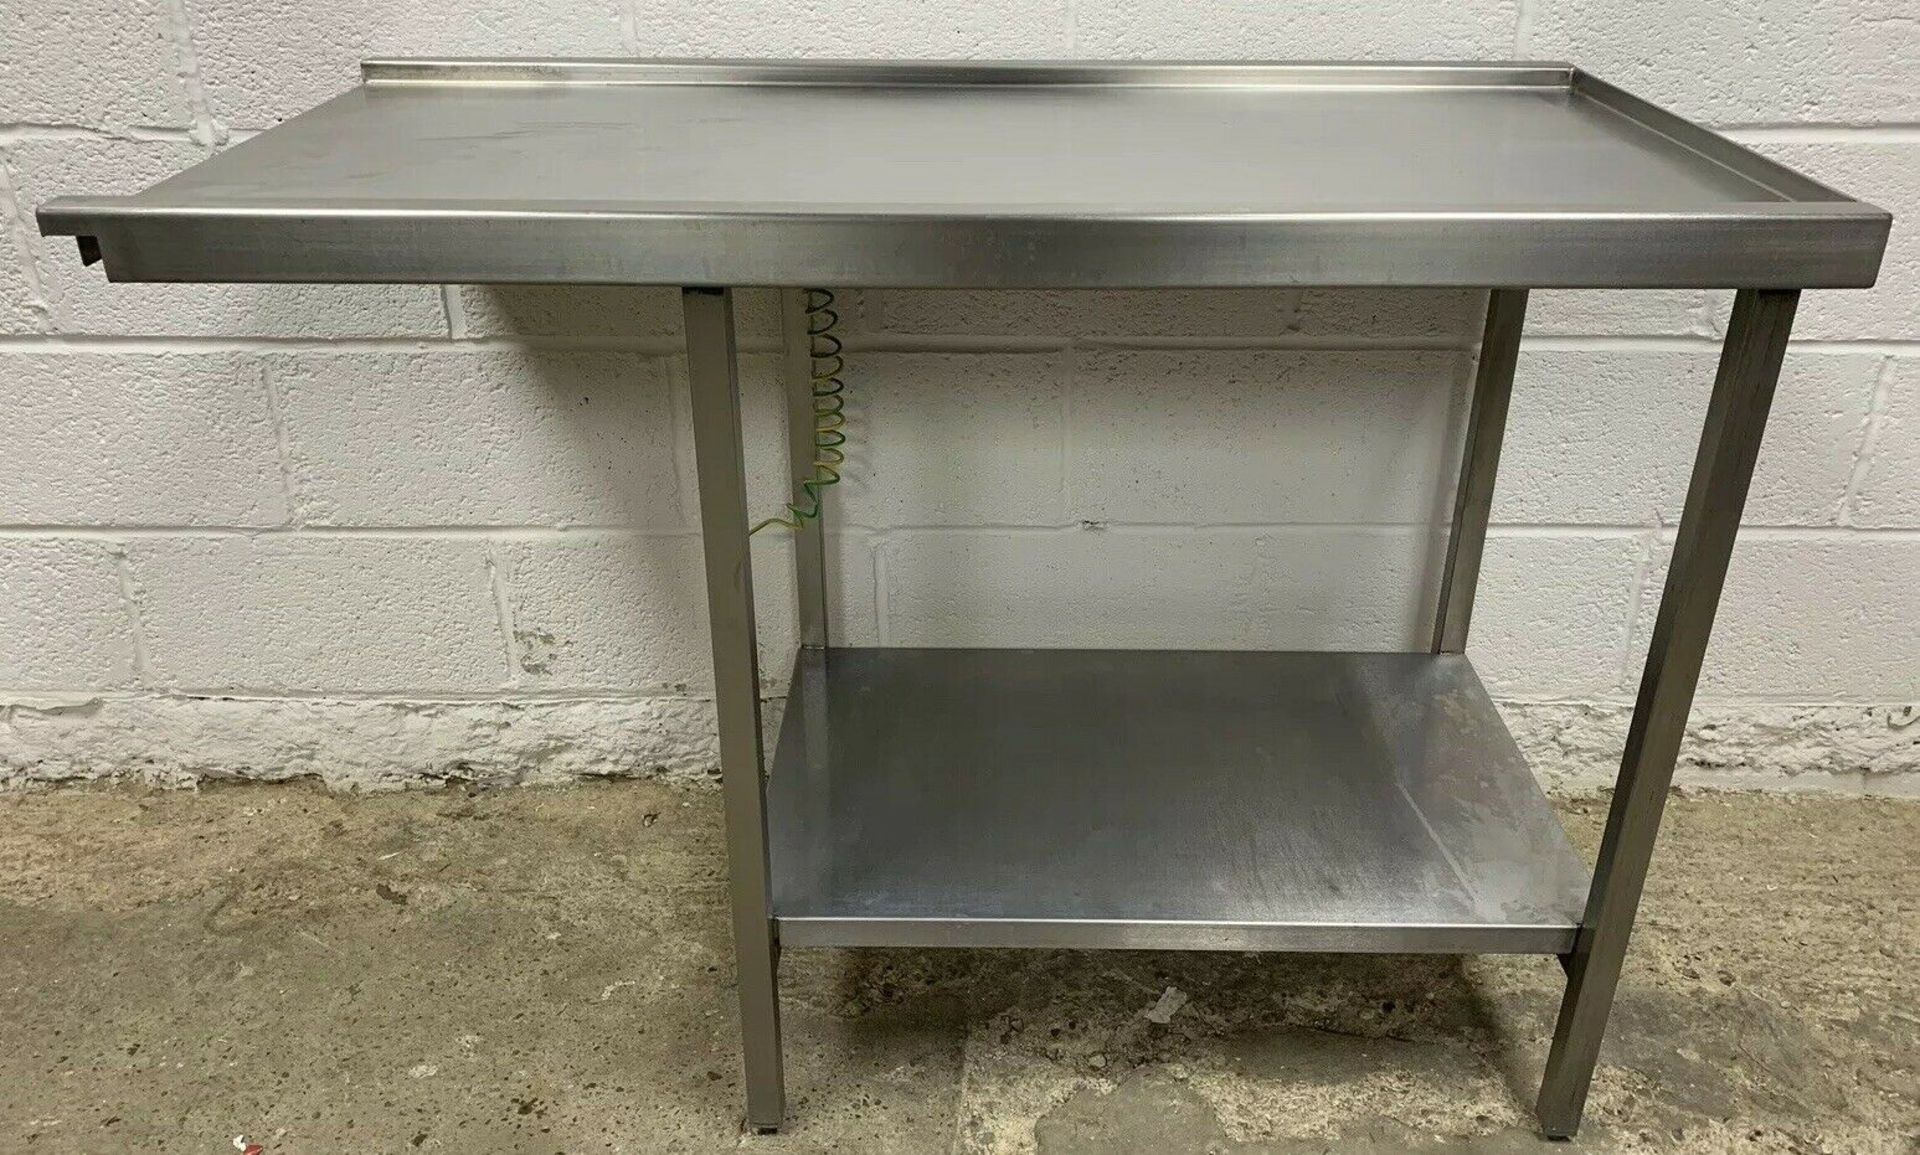 Lot 52 - Stainless Steel Dishwasher Outlet / Exit Table